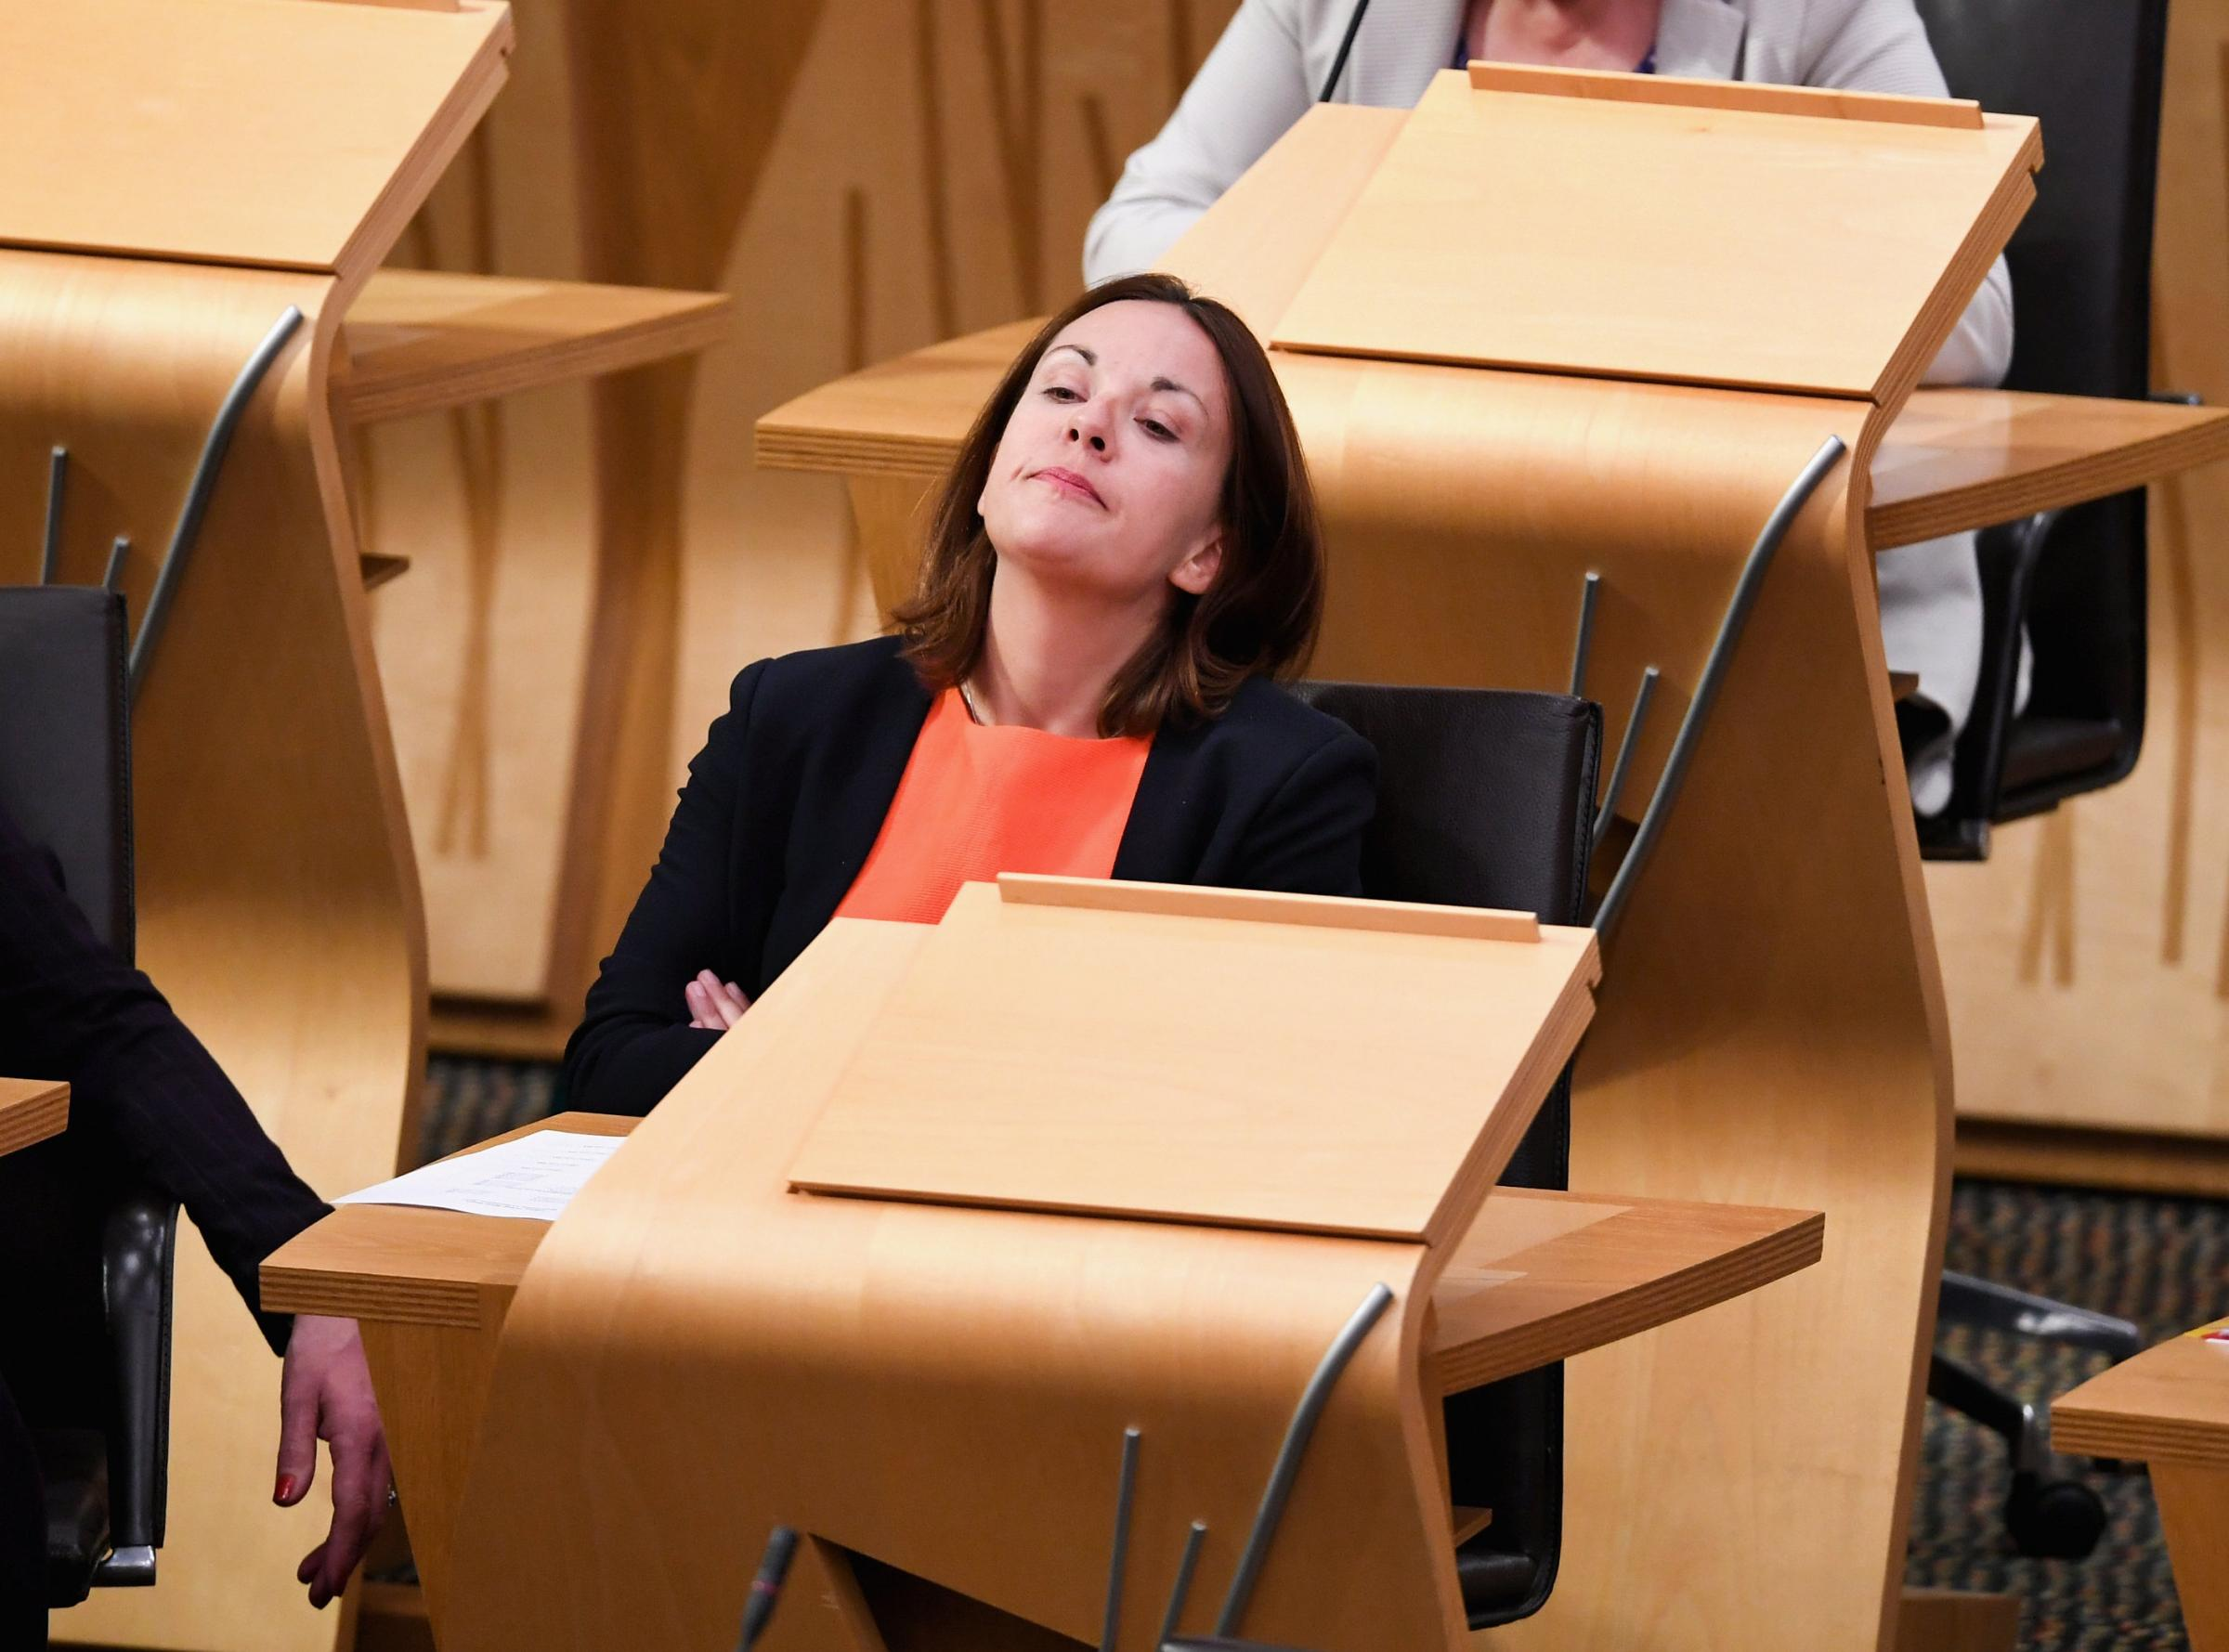 Kezia Dugdale has given £5100 to charity from a fee of about £45,000 after tax